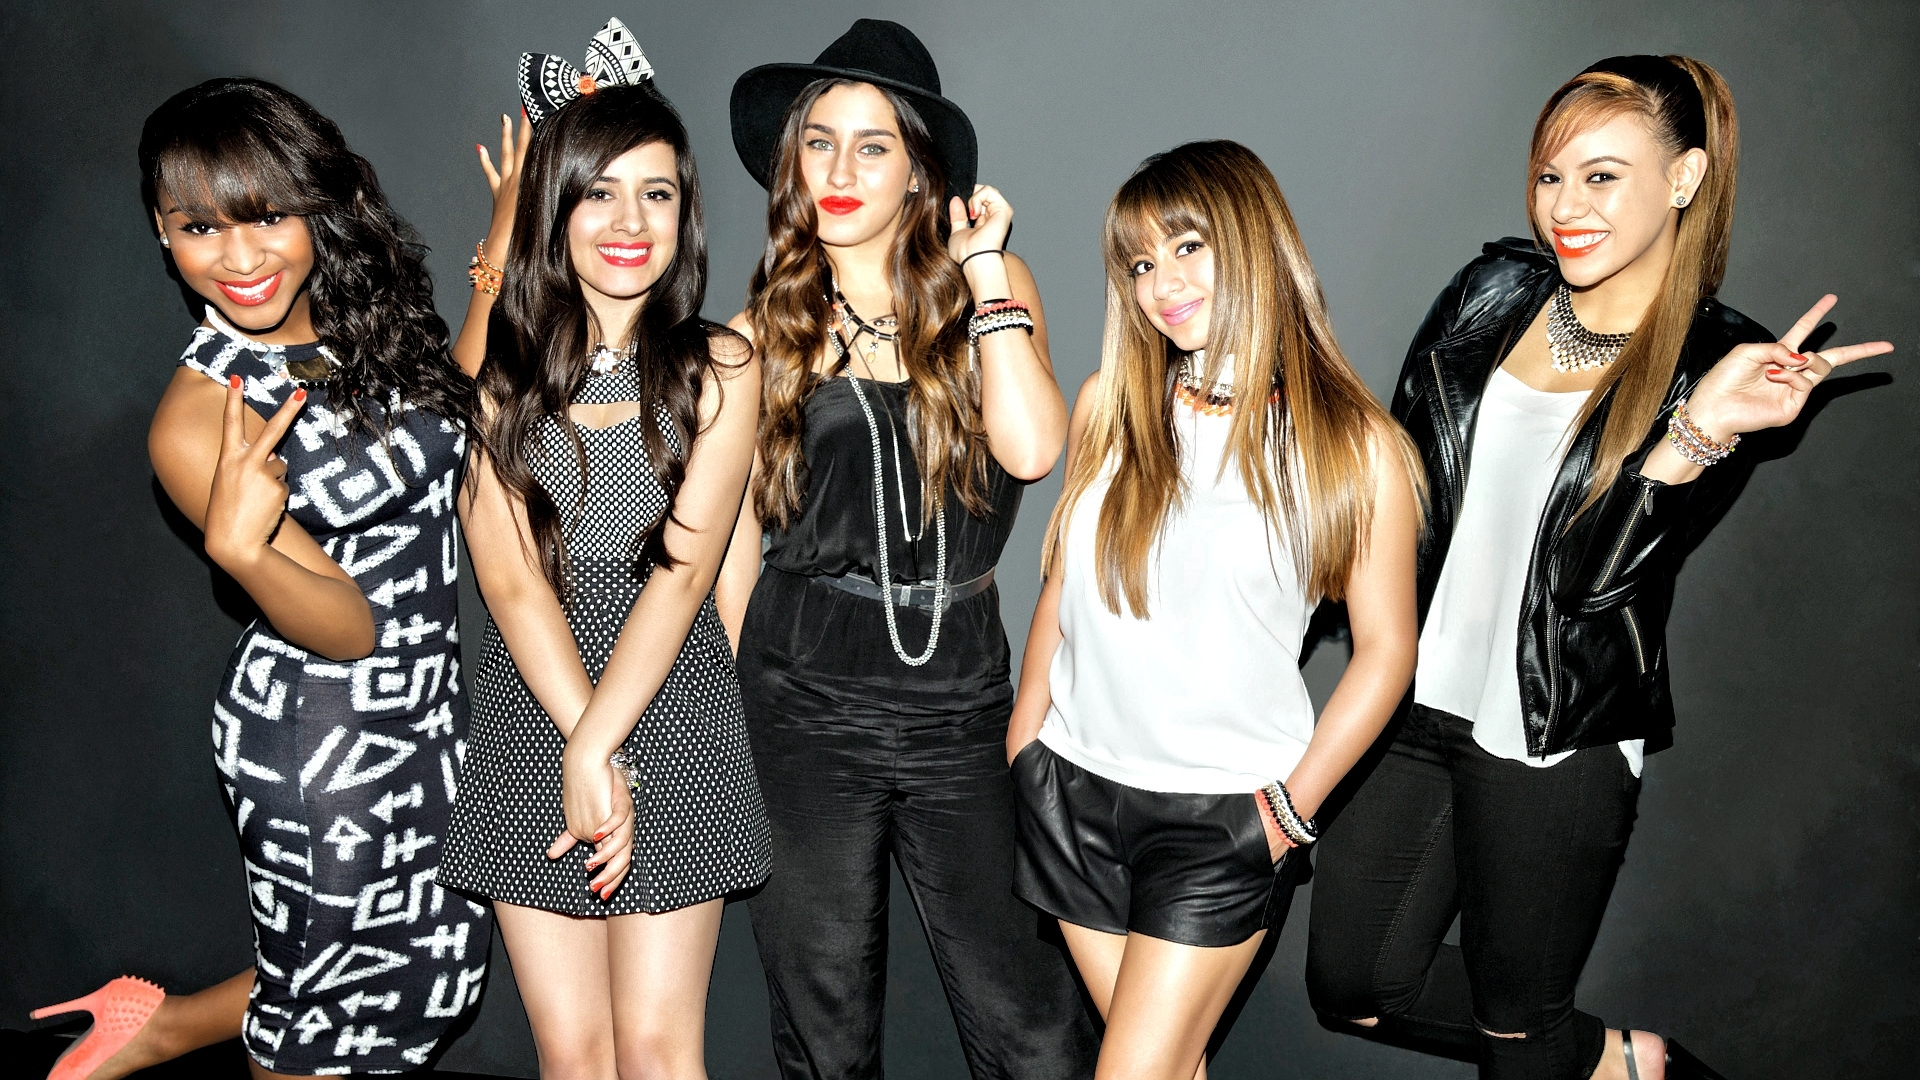 fifth harmony | wallpapers hd - fond d'ecran iphone, android et pc n